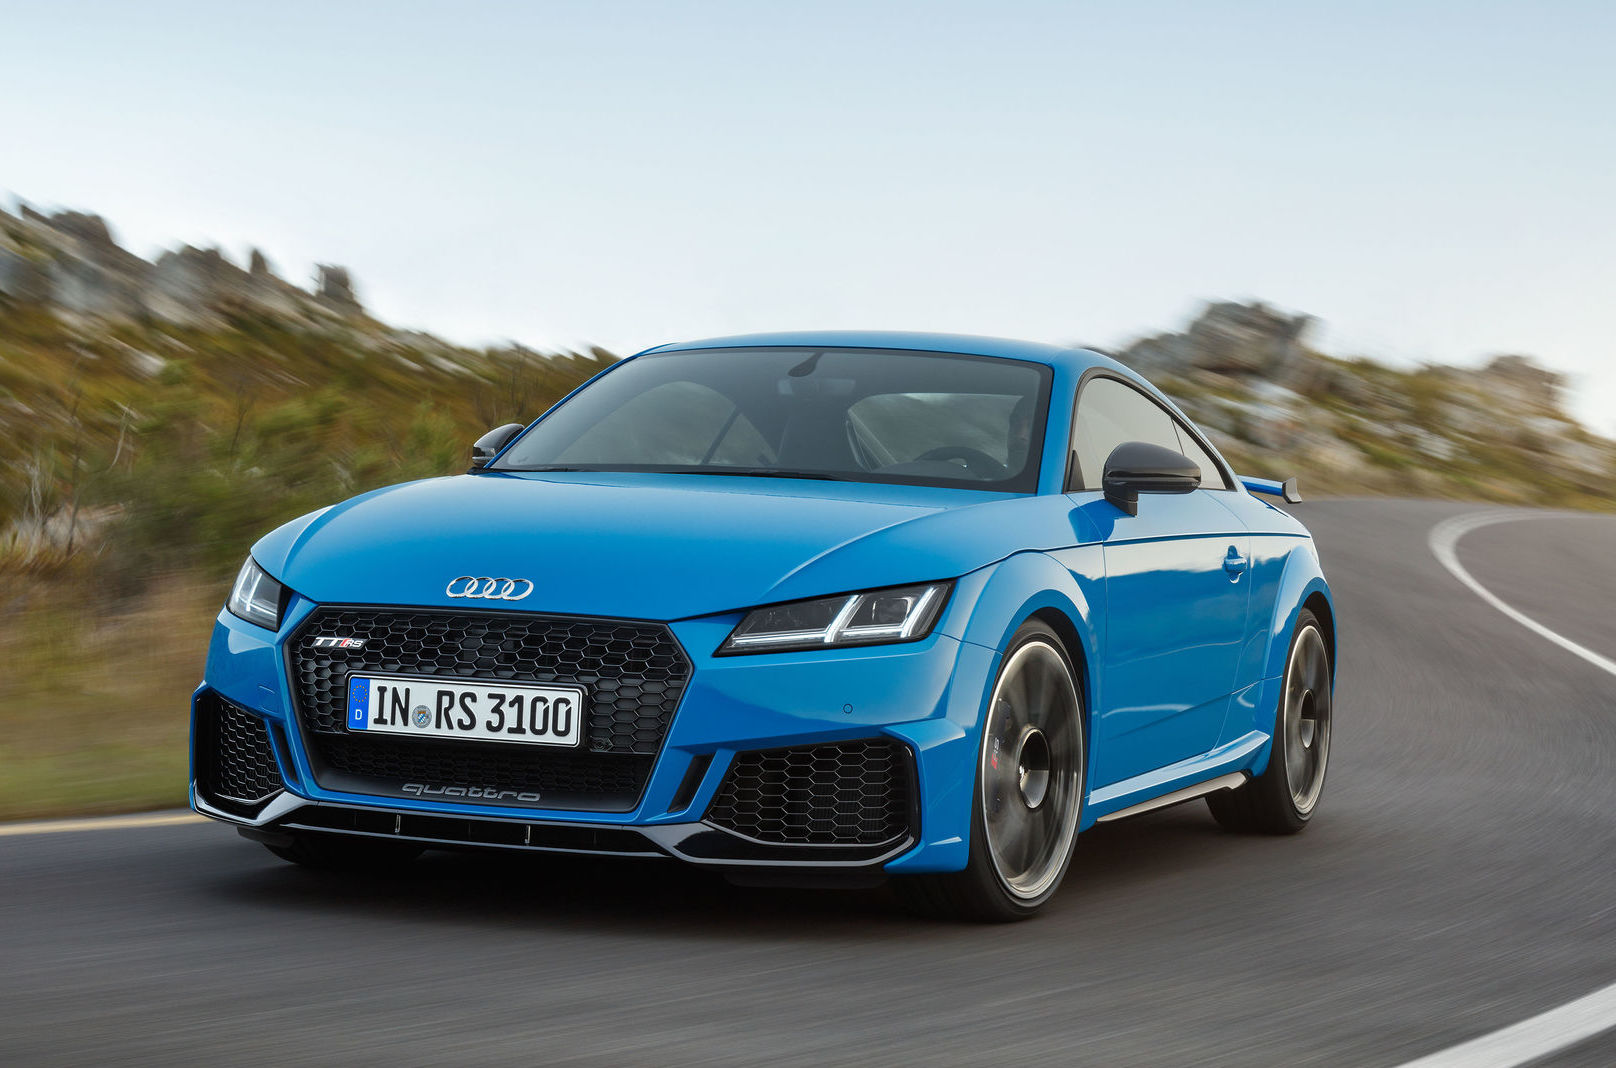 2019 Audi TT RS revealed, continues with cracker 2.5 TFSI